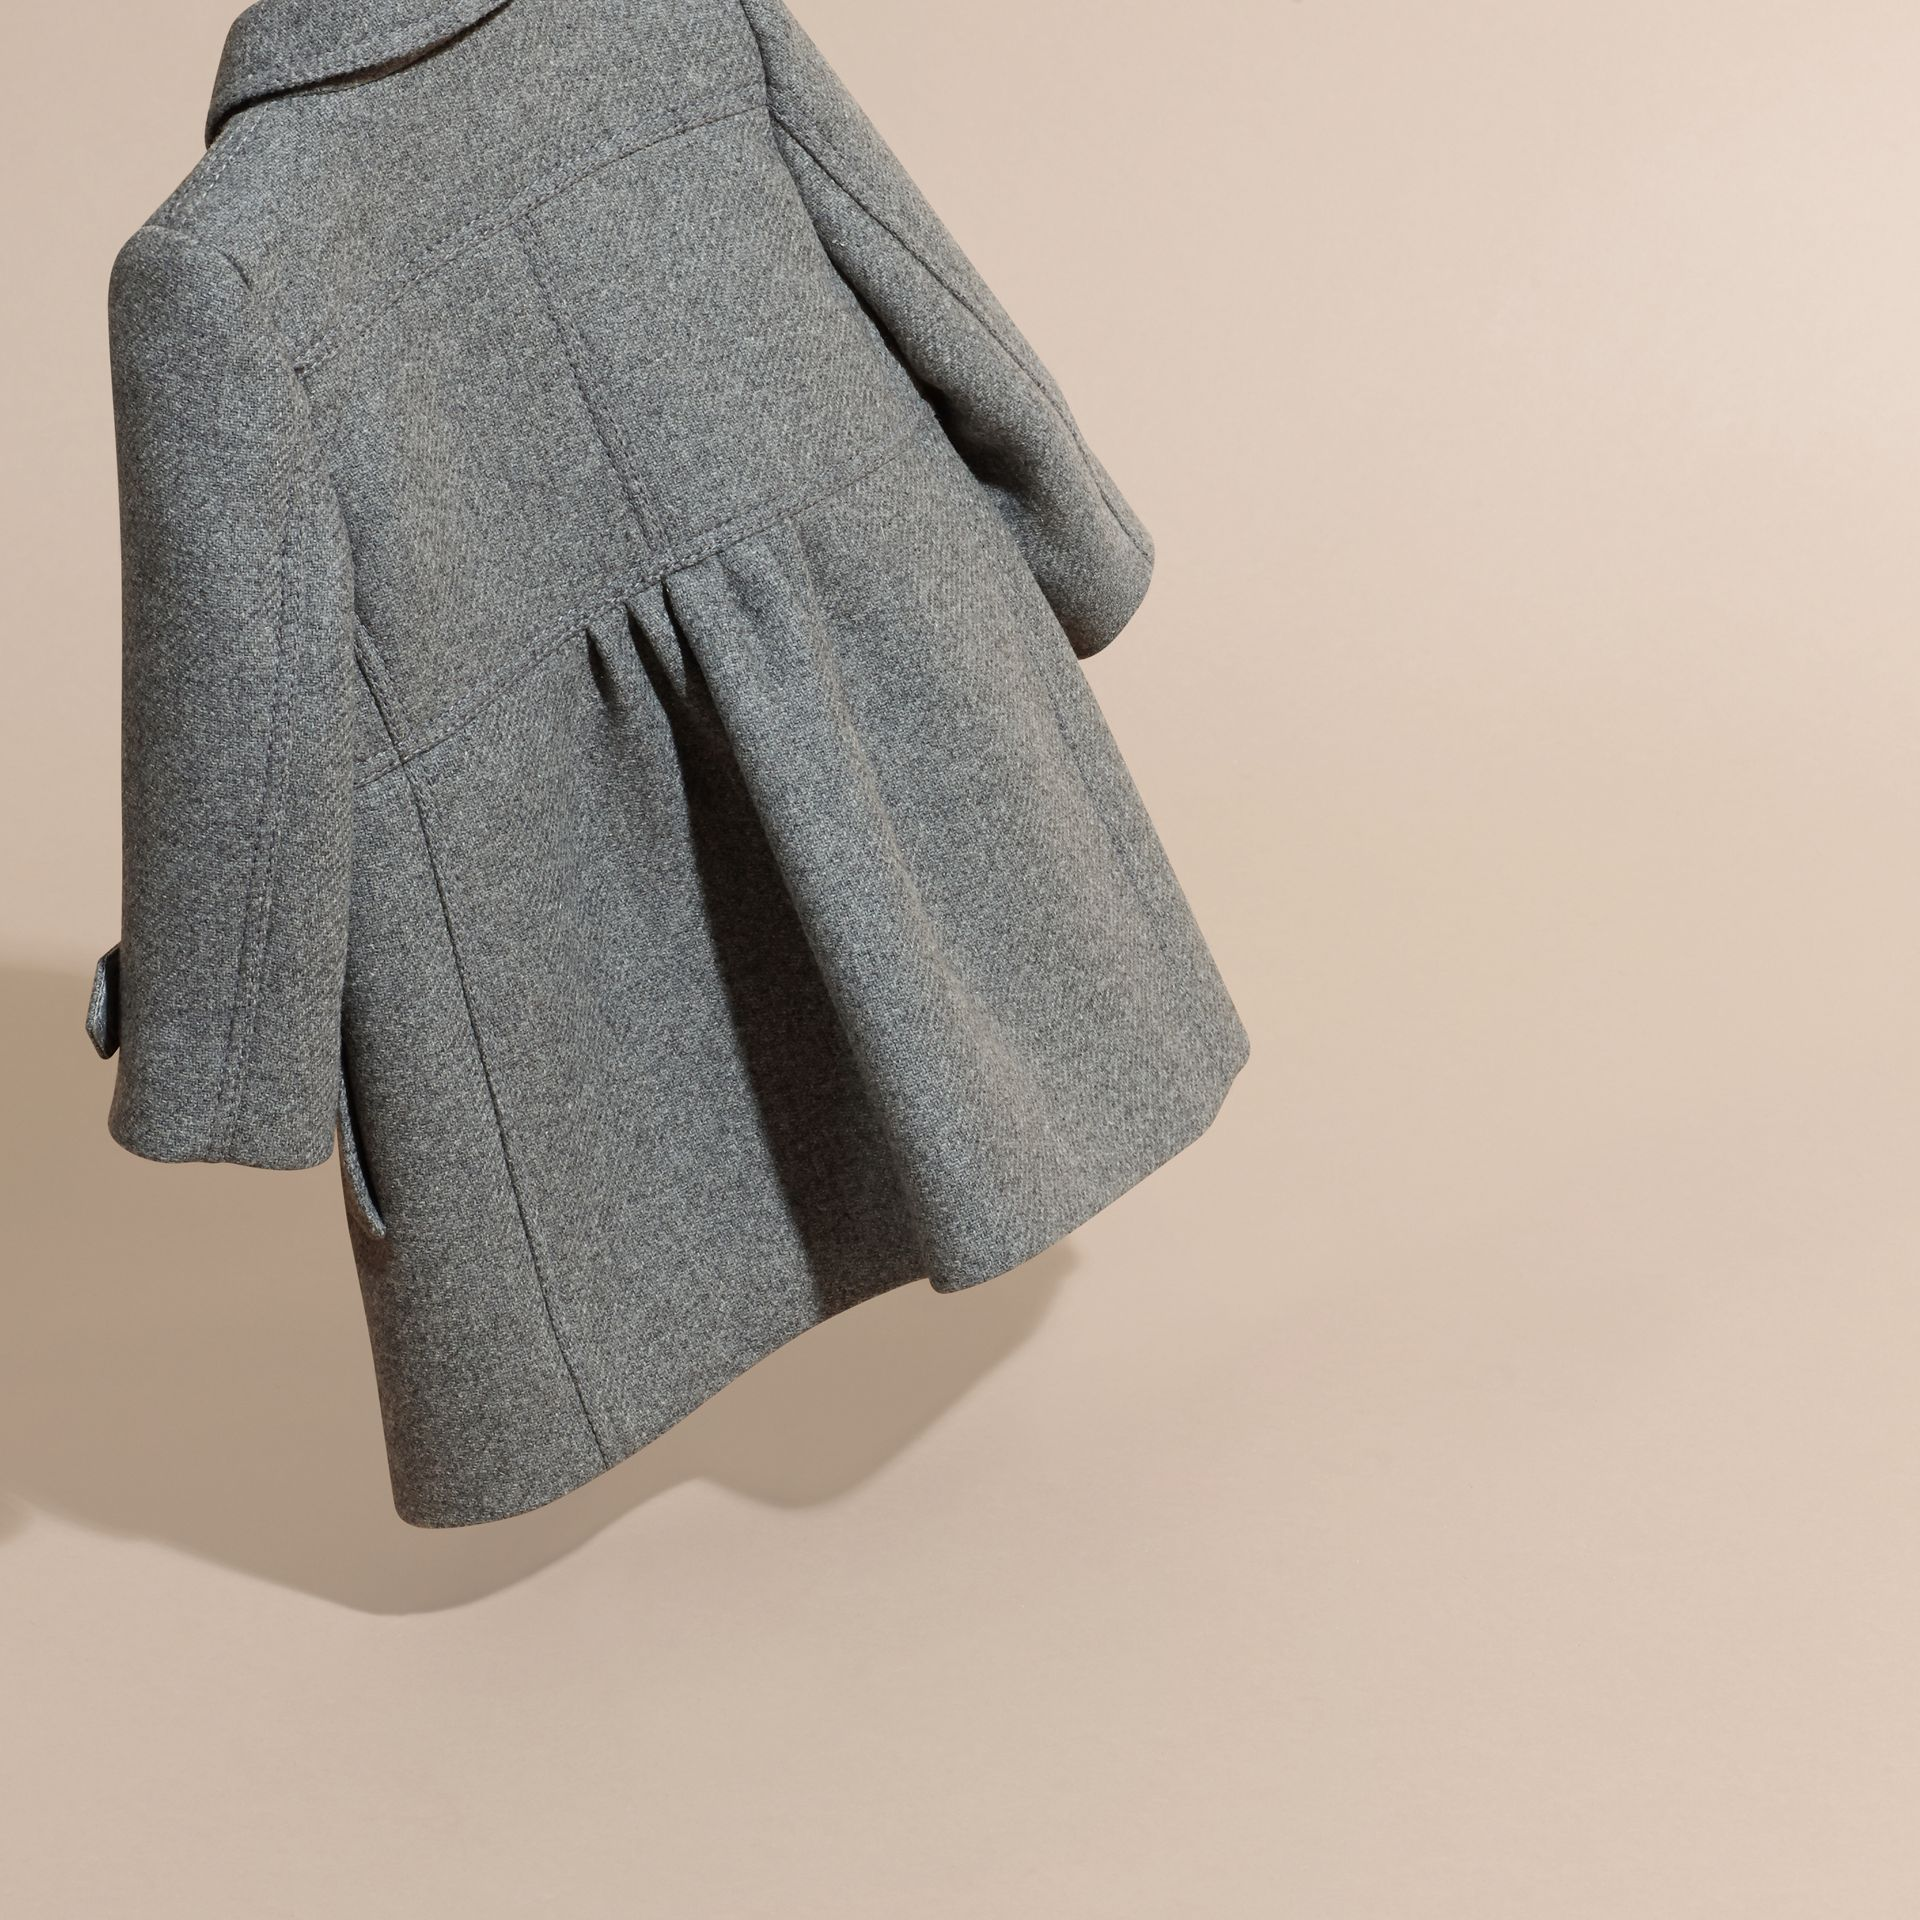 Steel grey melange Tailored Wool Cashmere Blend Coat Steel Grey Melange - gallery image 4